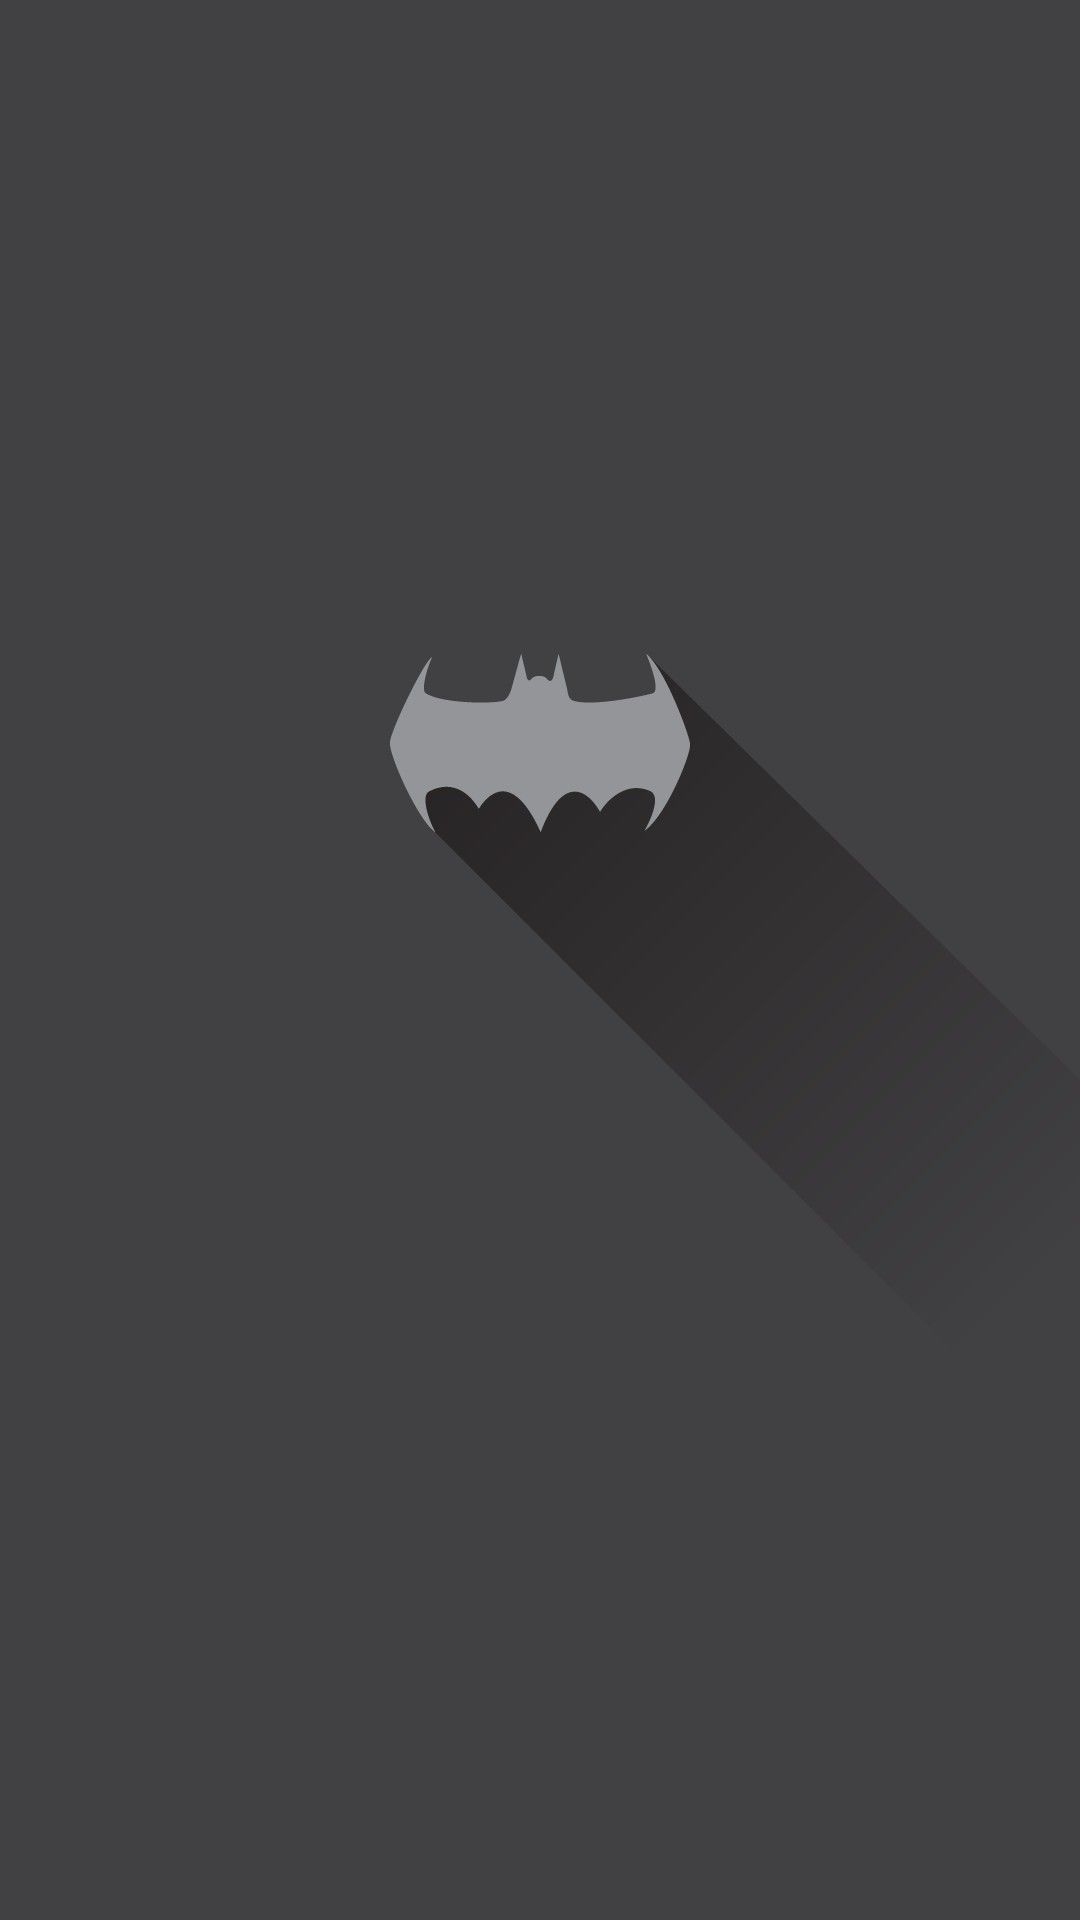 Batman Minimalist Wallpaper Mobile Moto G Plus